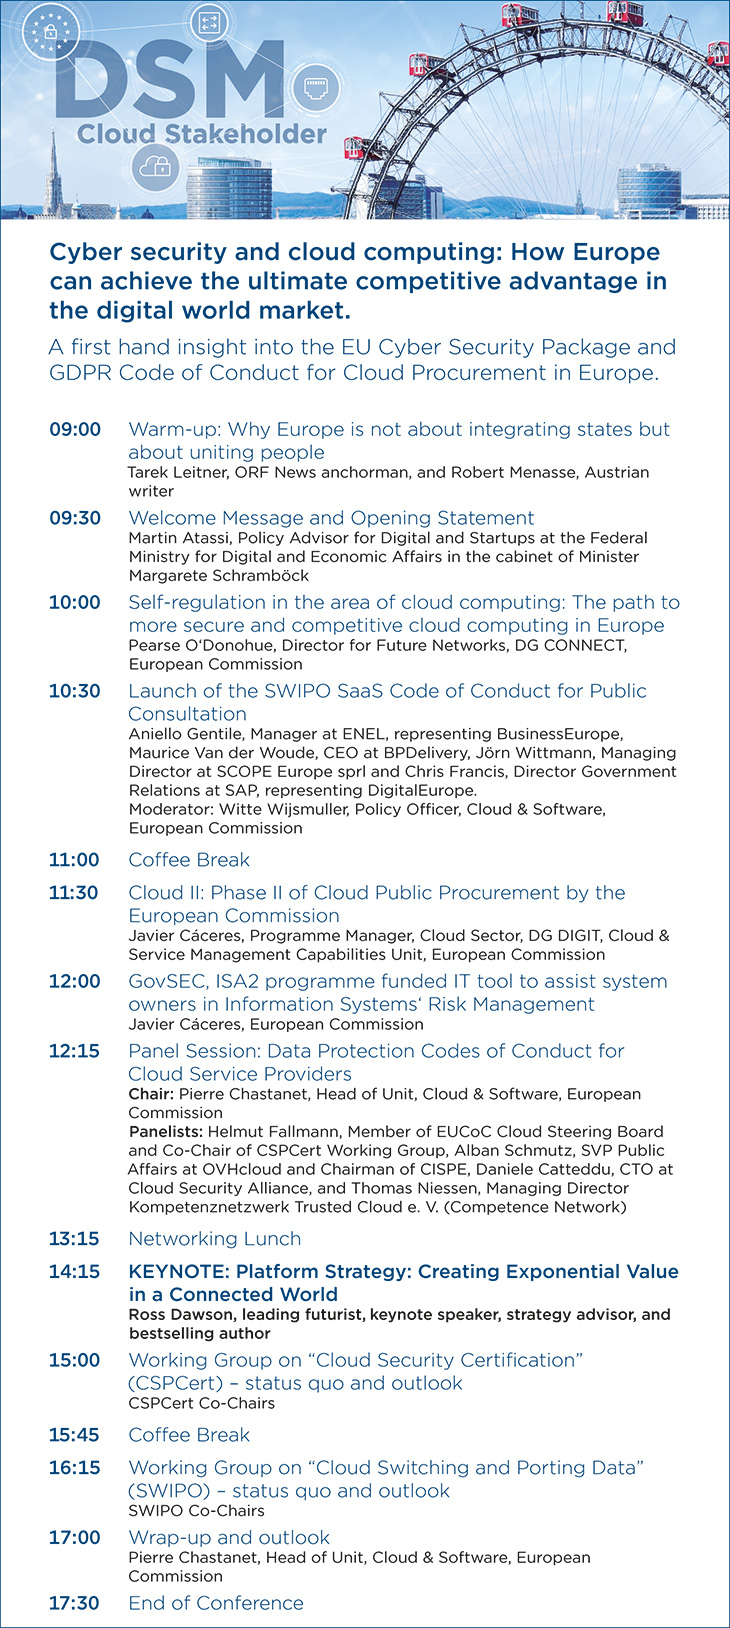 Agenda_DSM Cyber Security and Cloud Computing Conference_06.12.2018 in Vienna